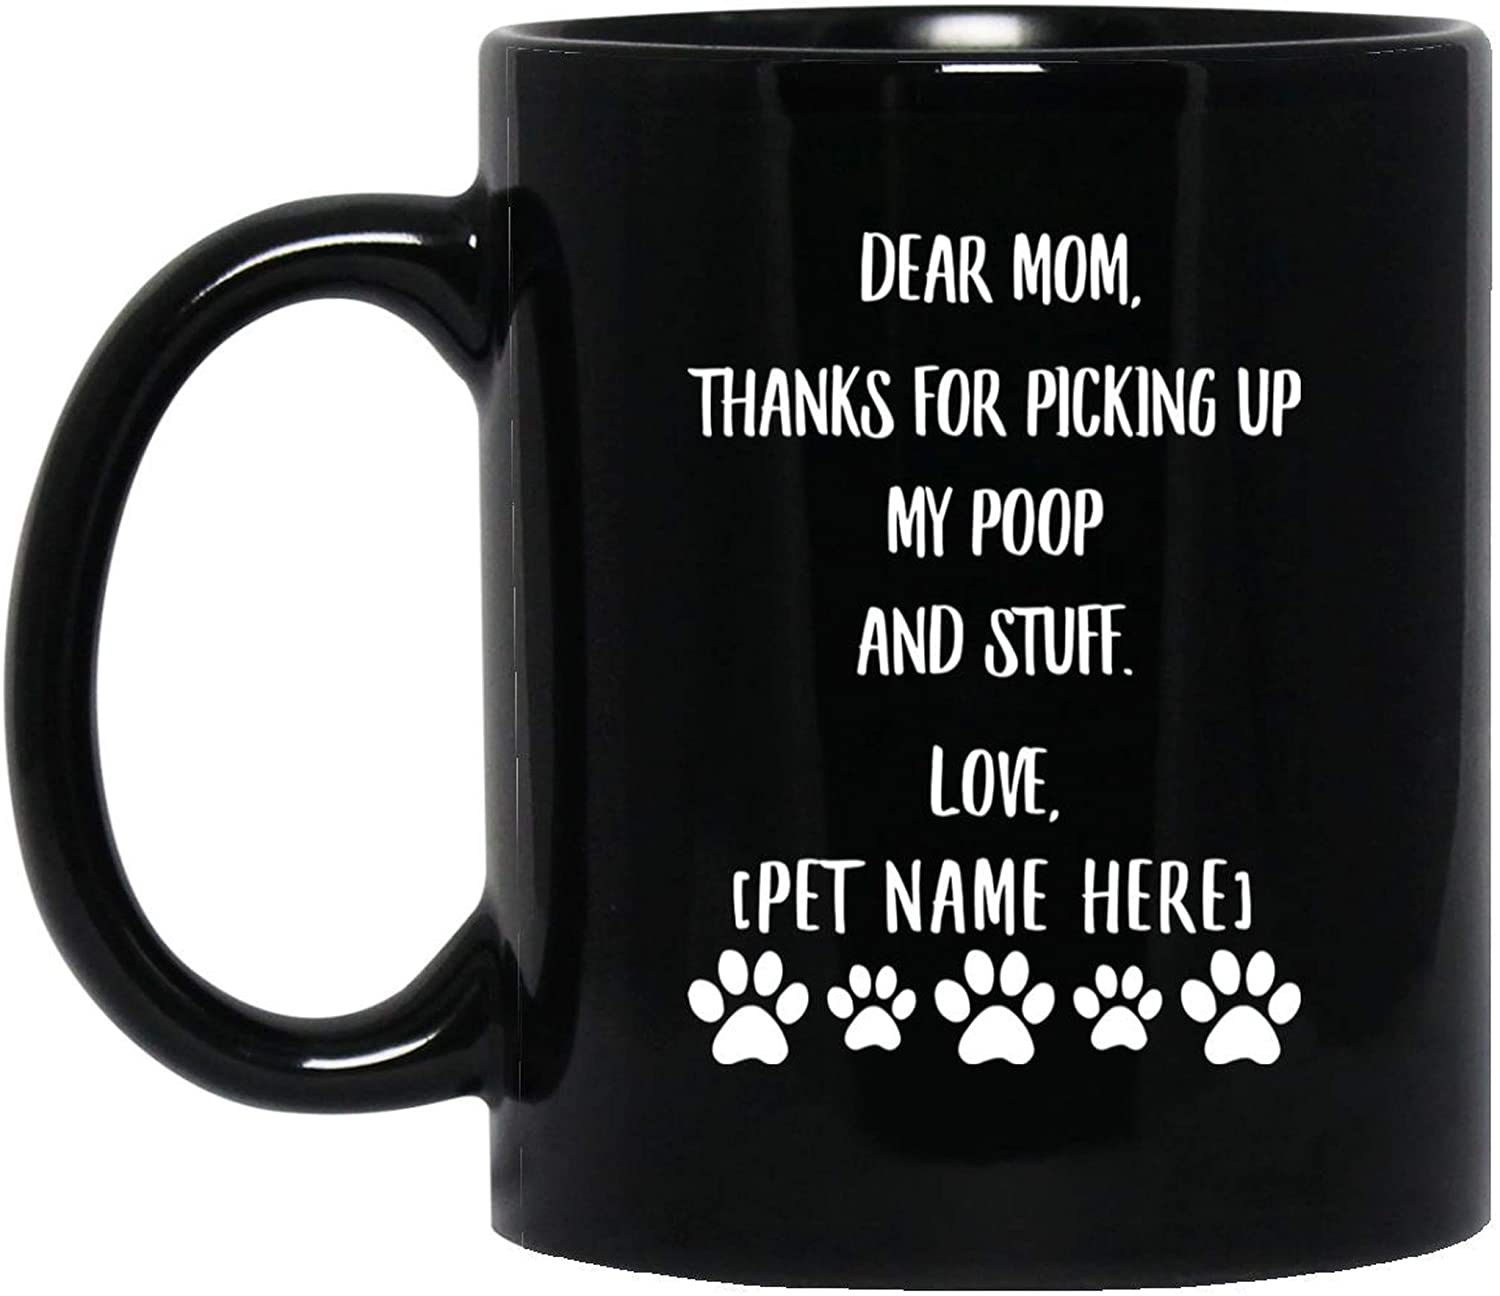 Lovesout Funny Personalized Dog Mom Gifts for Mothers Day - Dear Mom Thanks for Picking Up My Poop Mug Black Ceramic Coffee Cup 11 Oz